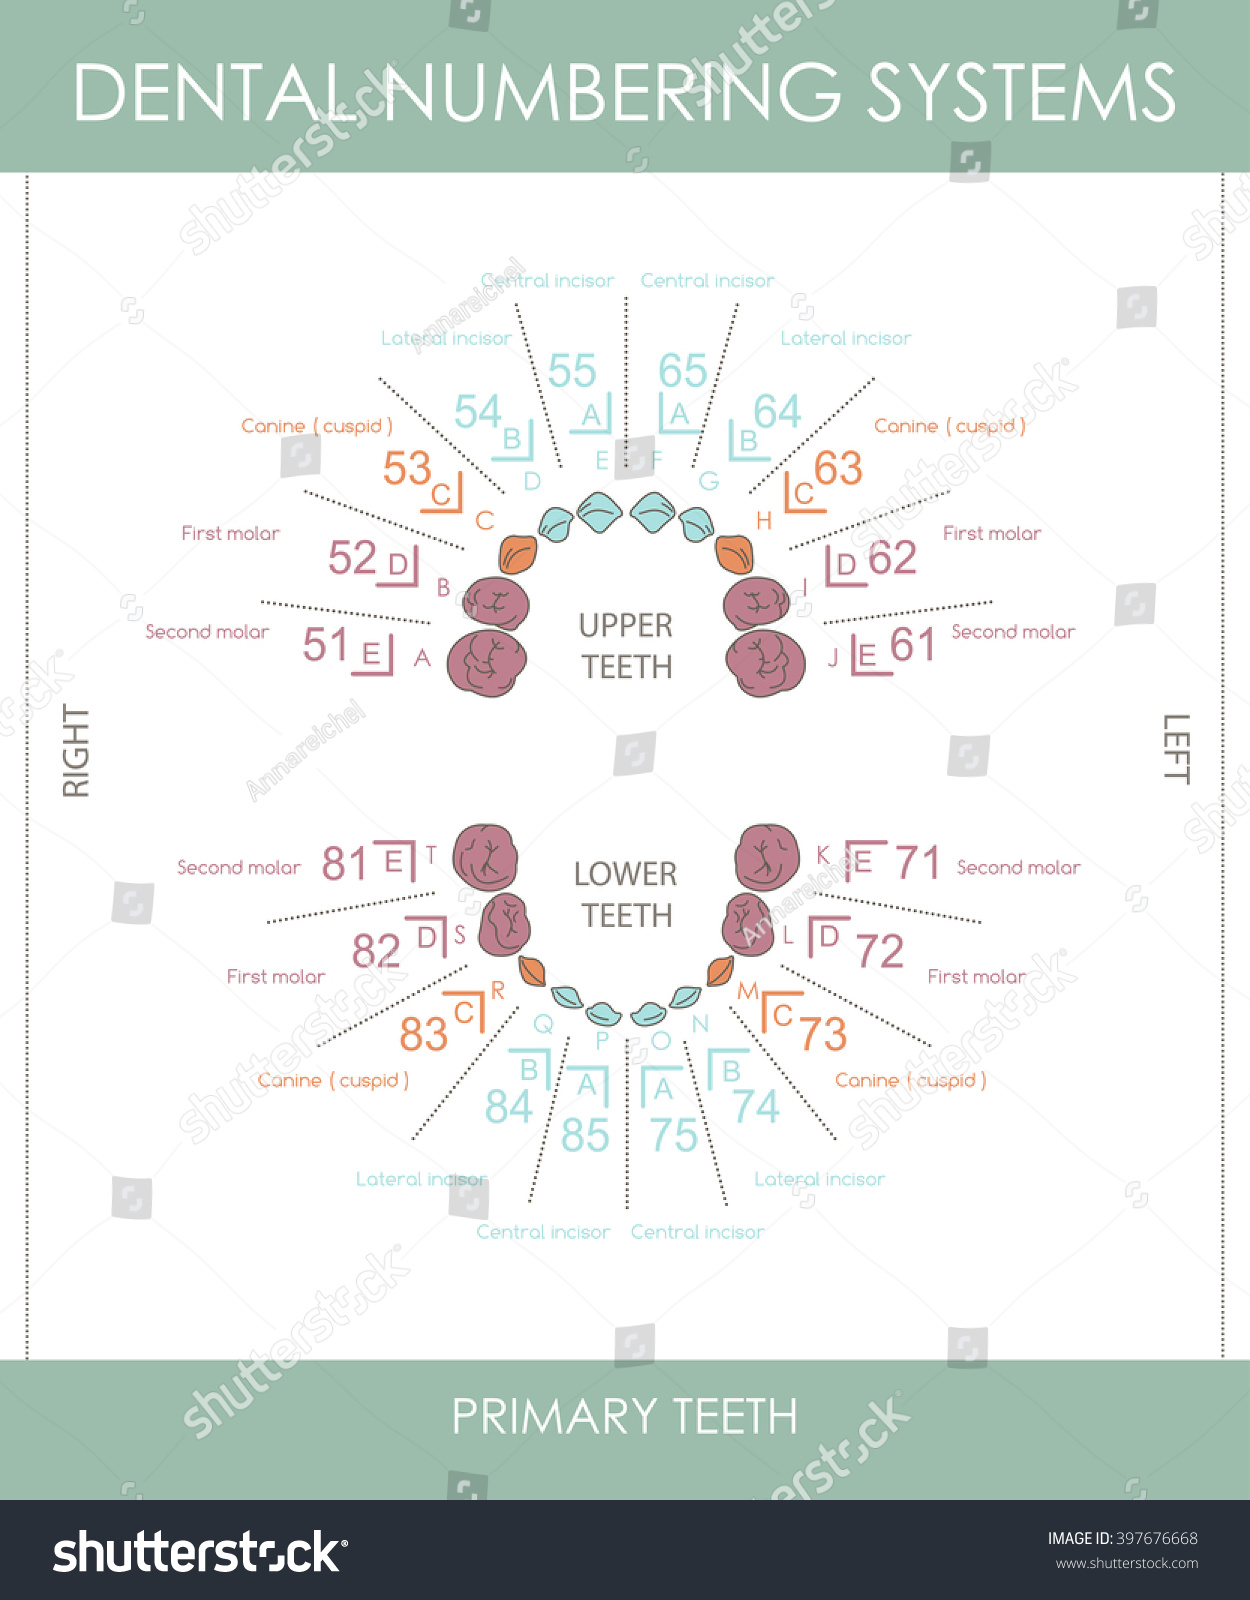 Human Primary Teeth Numbering Systems Infographic Stock Vector ...